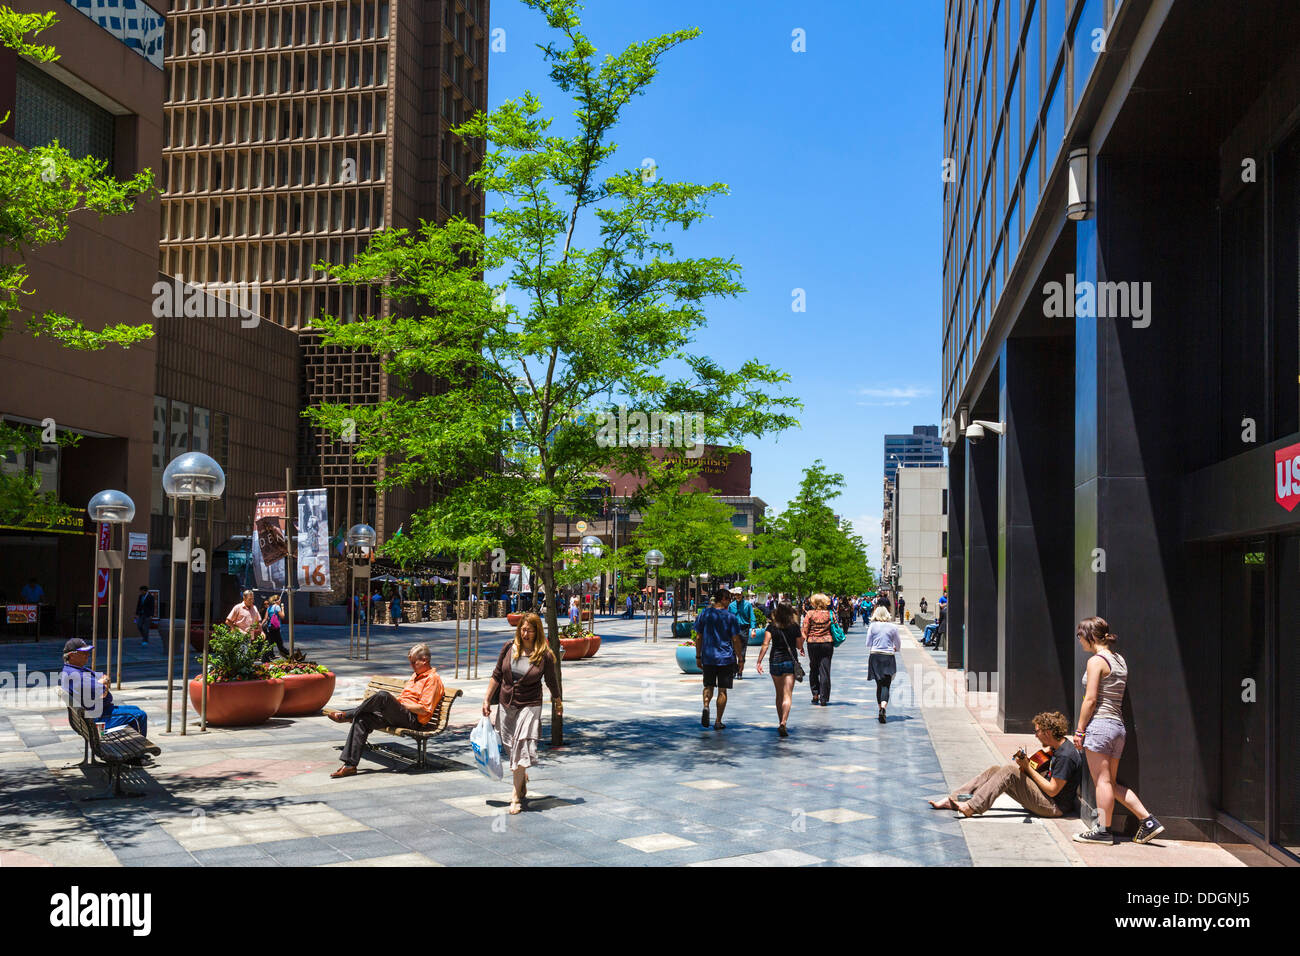 The pedestrianized 16th Street Mall in downtown Denver, Colorado, USA - Stock Image